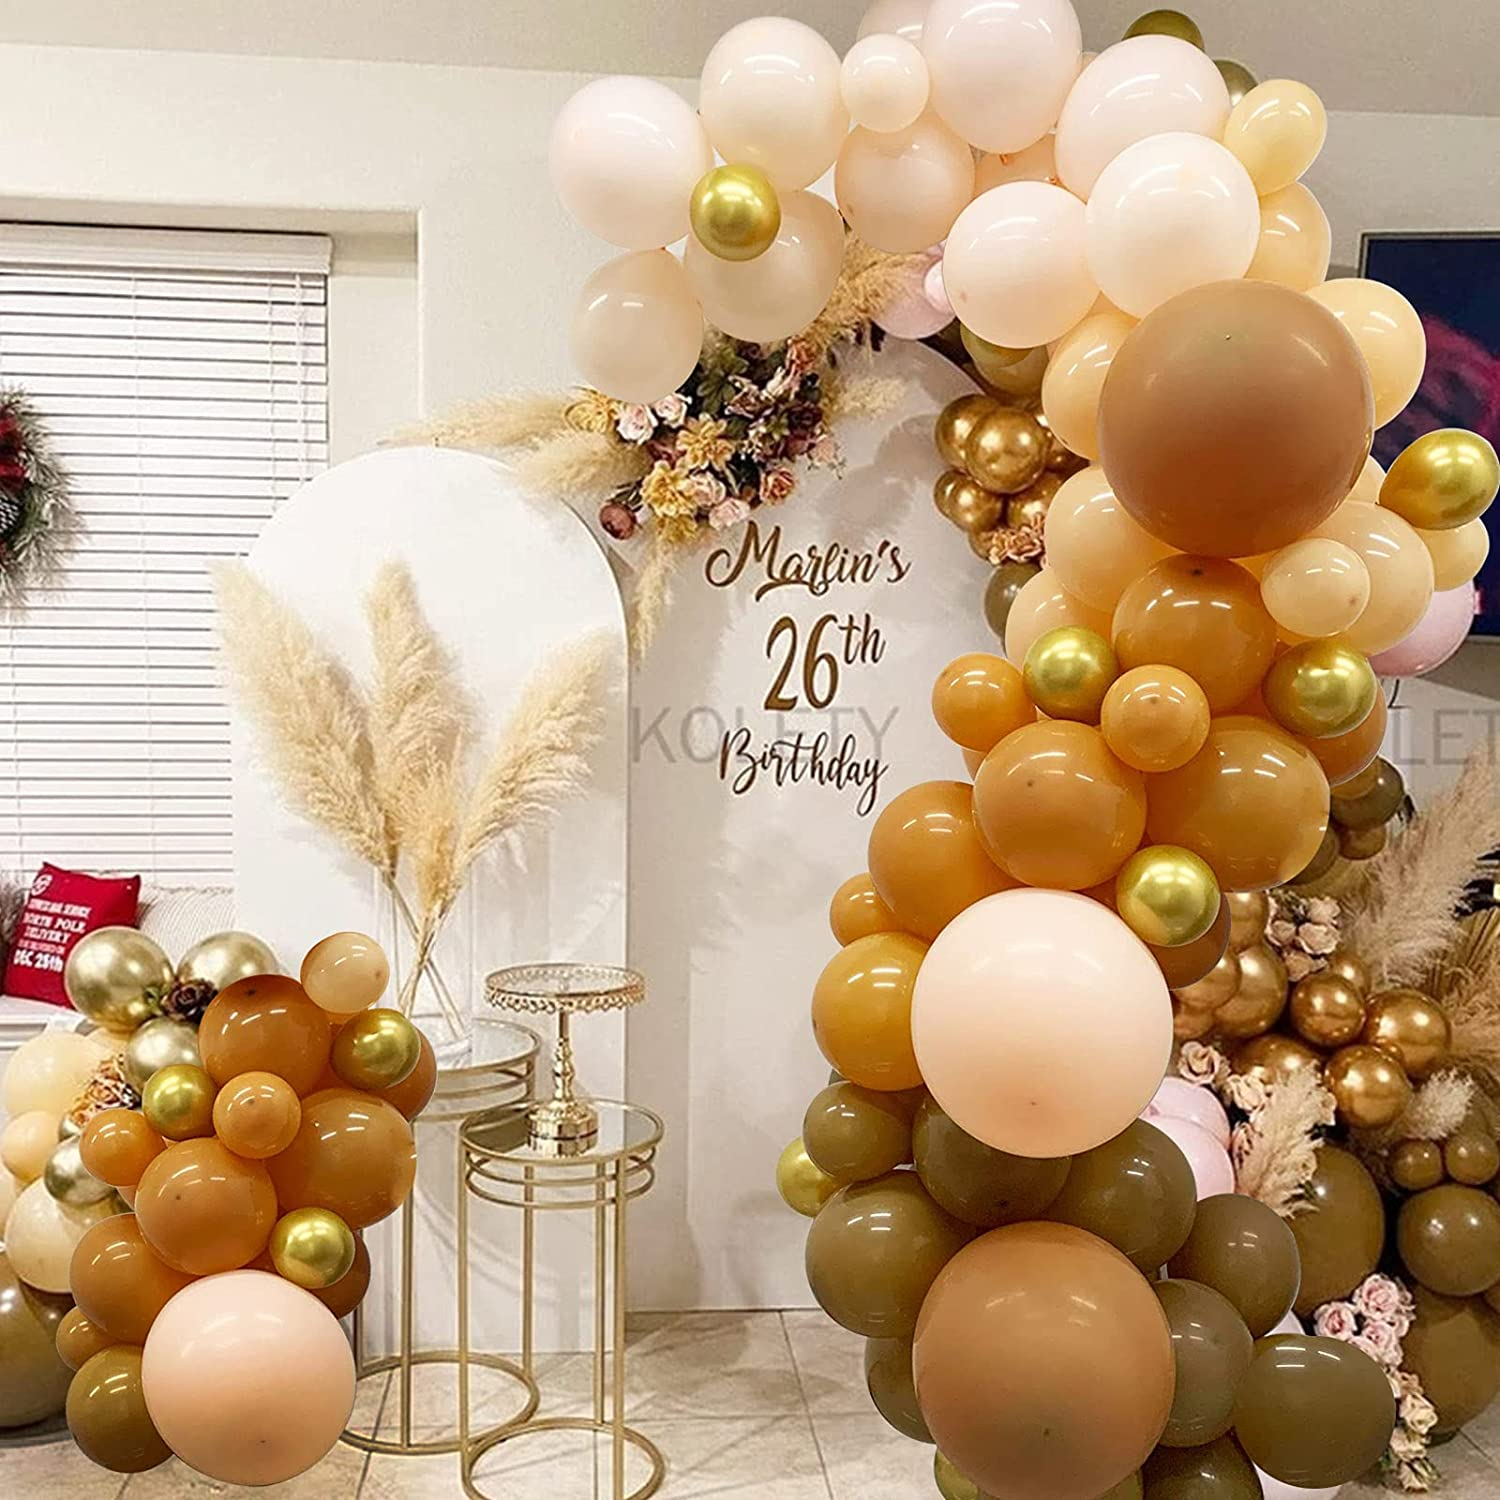 139pcs Pastel Brown Balloon Arch Garland Kit - Coffee Blush Gold Balloons for wild one birthday teddy bear woodland baby shower Safari jungle party decorations